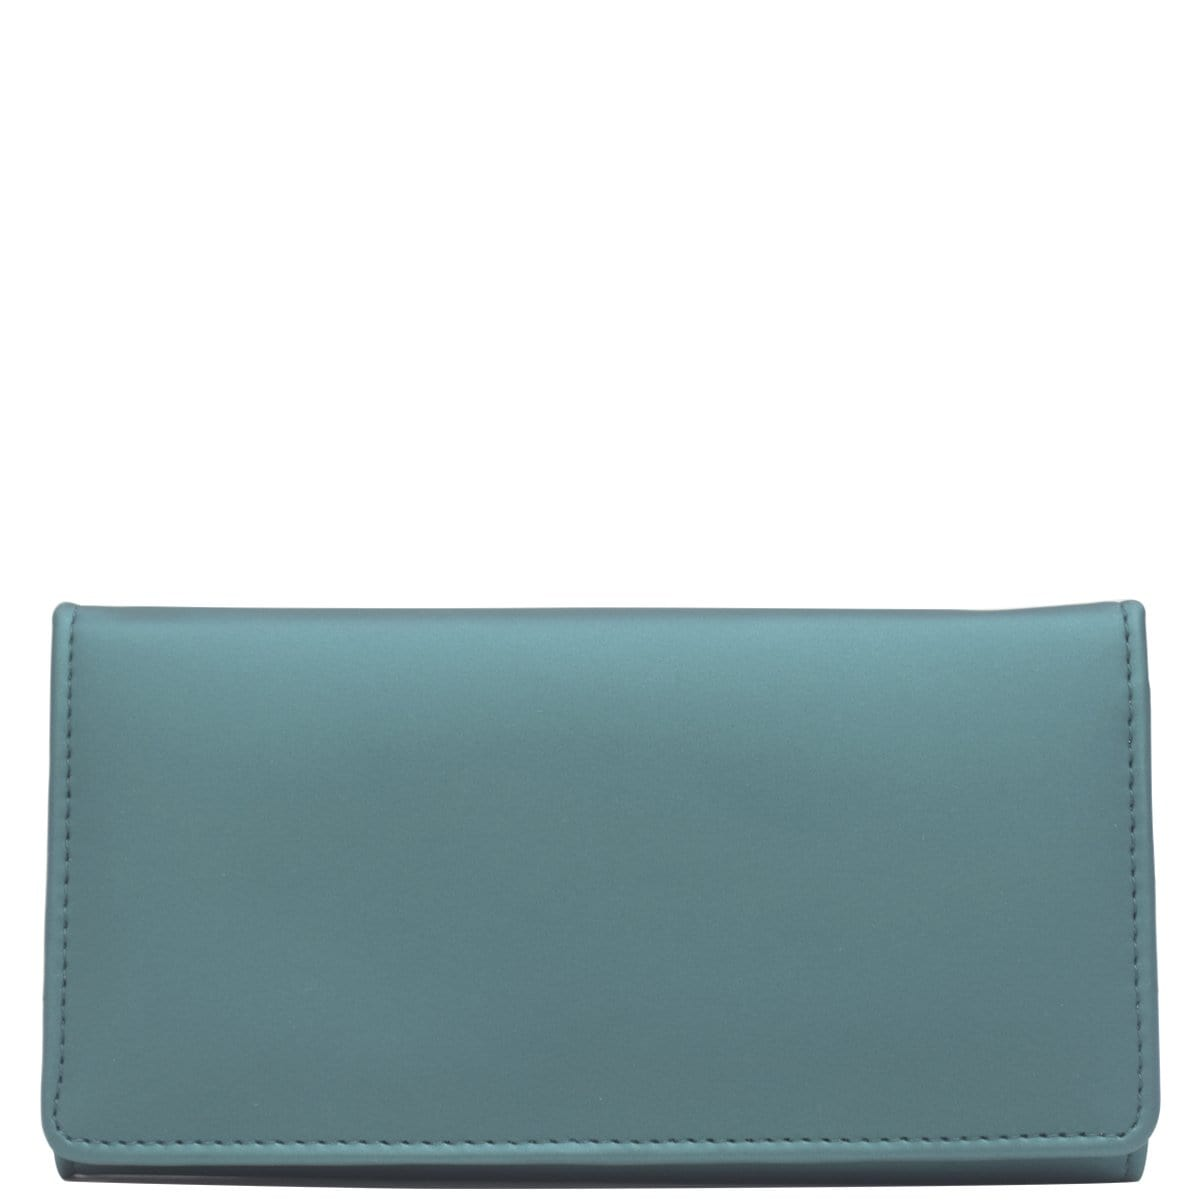 Wider Window Wallet - Green Shimmer